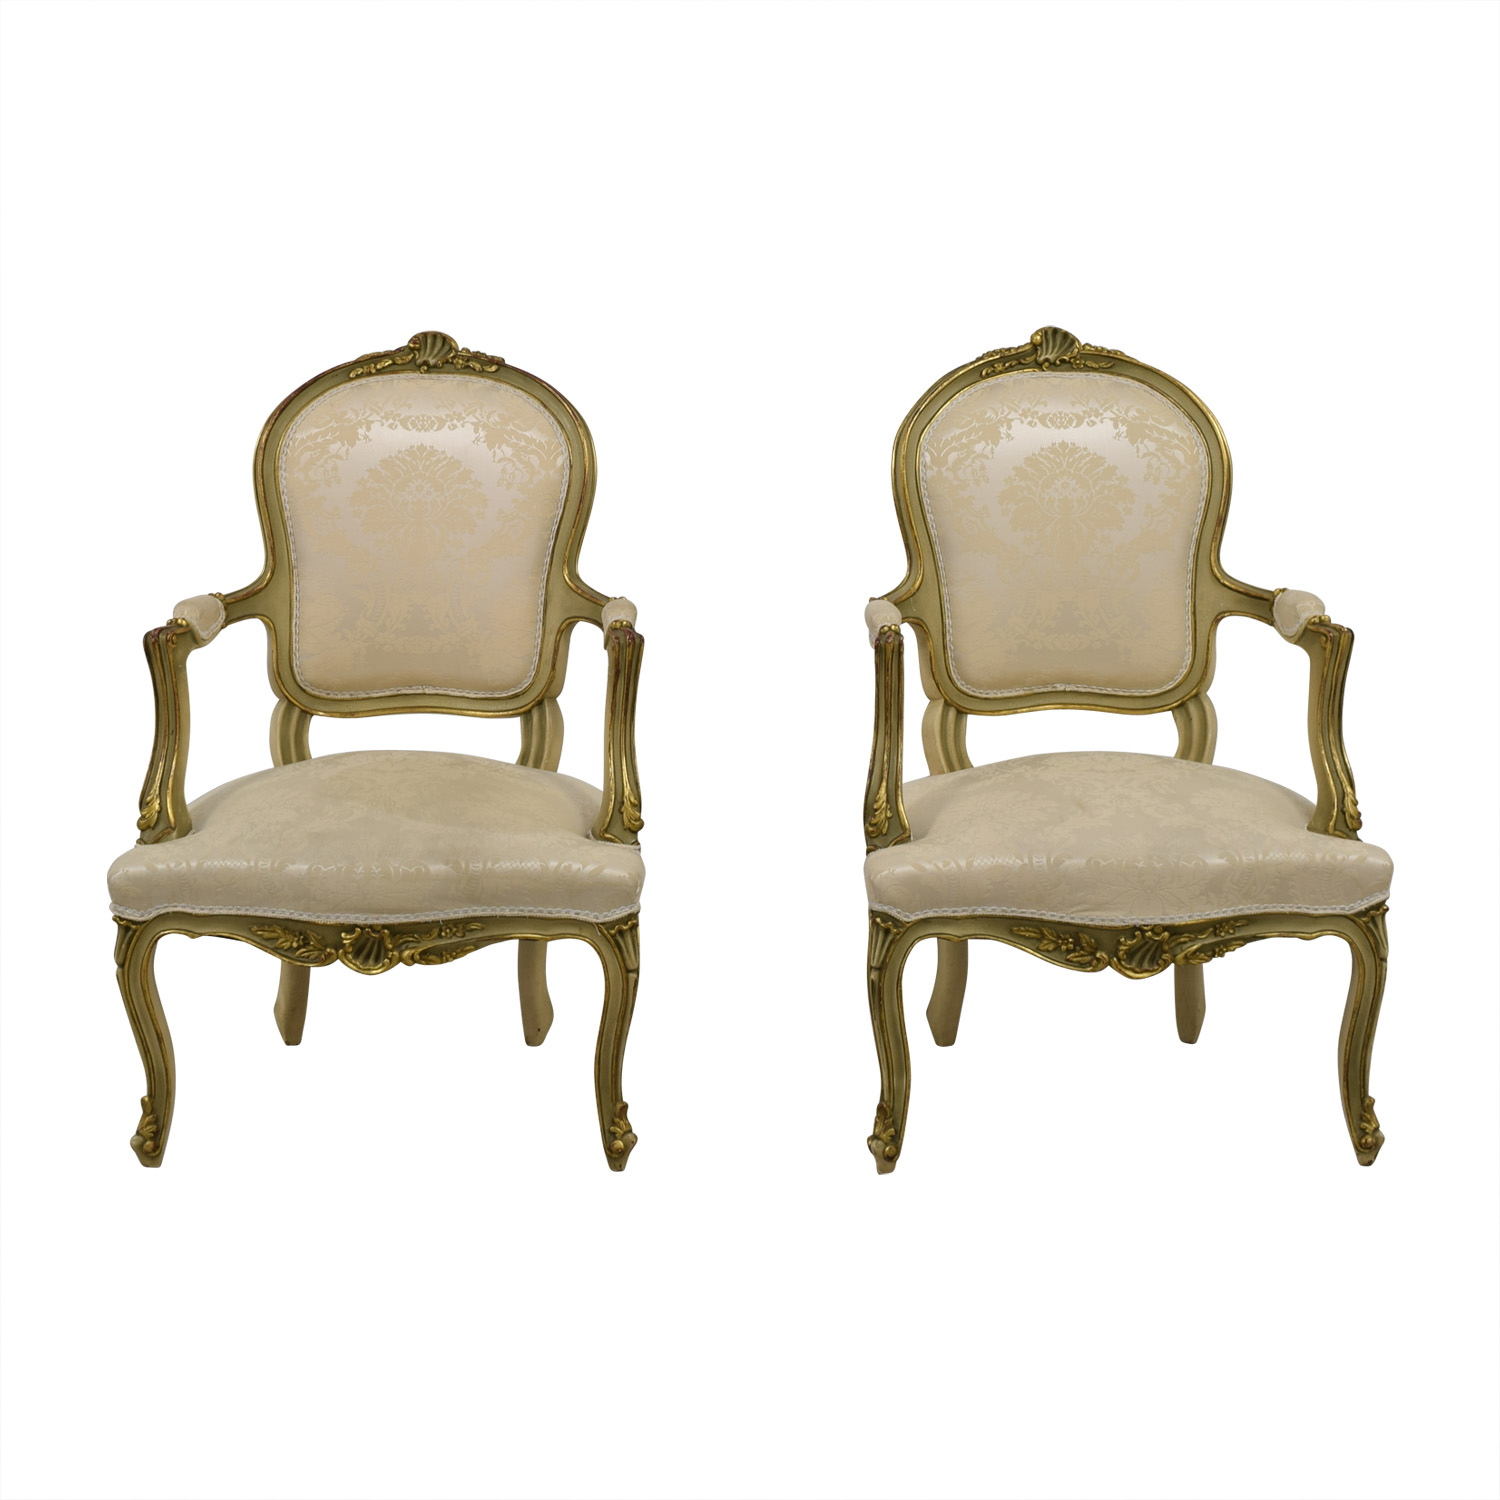 buy Antique White Jacquard Upholstered Gold Arm Chairs